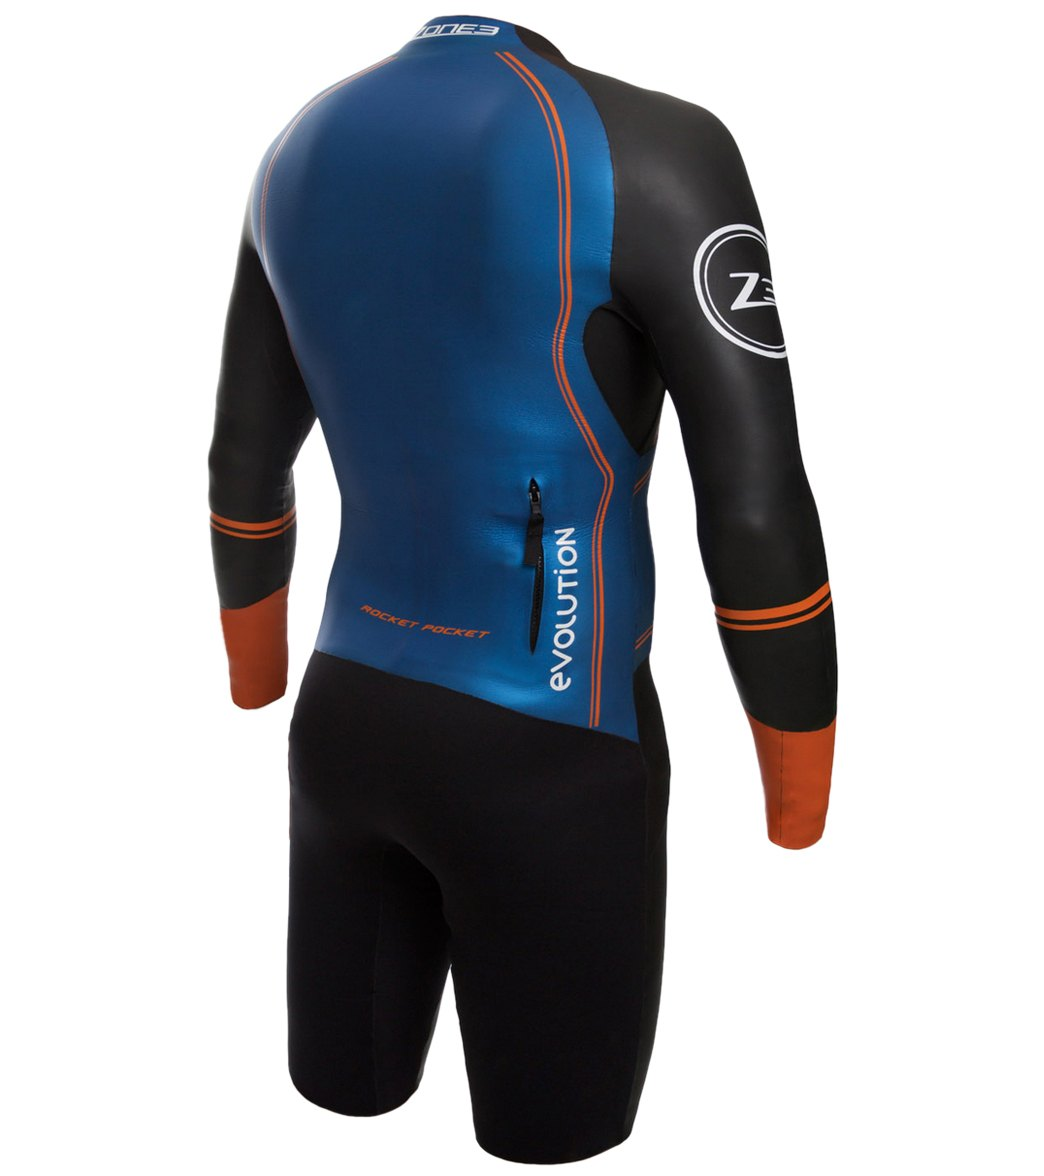 Zone 3 Men s Swim-Run Evolution Wetsuit at SwimOutlet.com - Free ... 7d0807c6e836